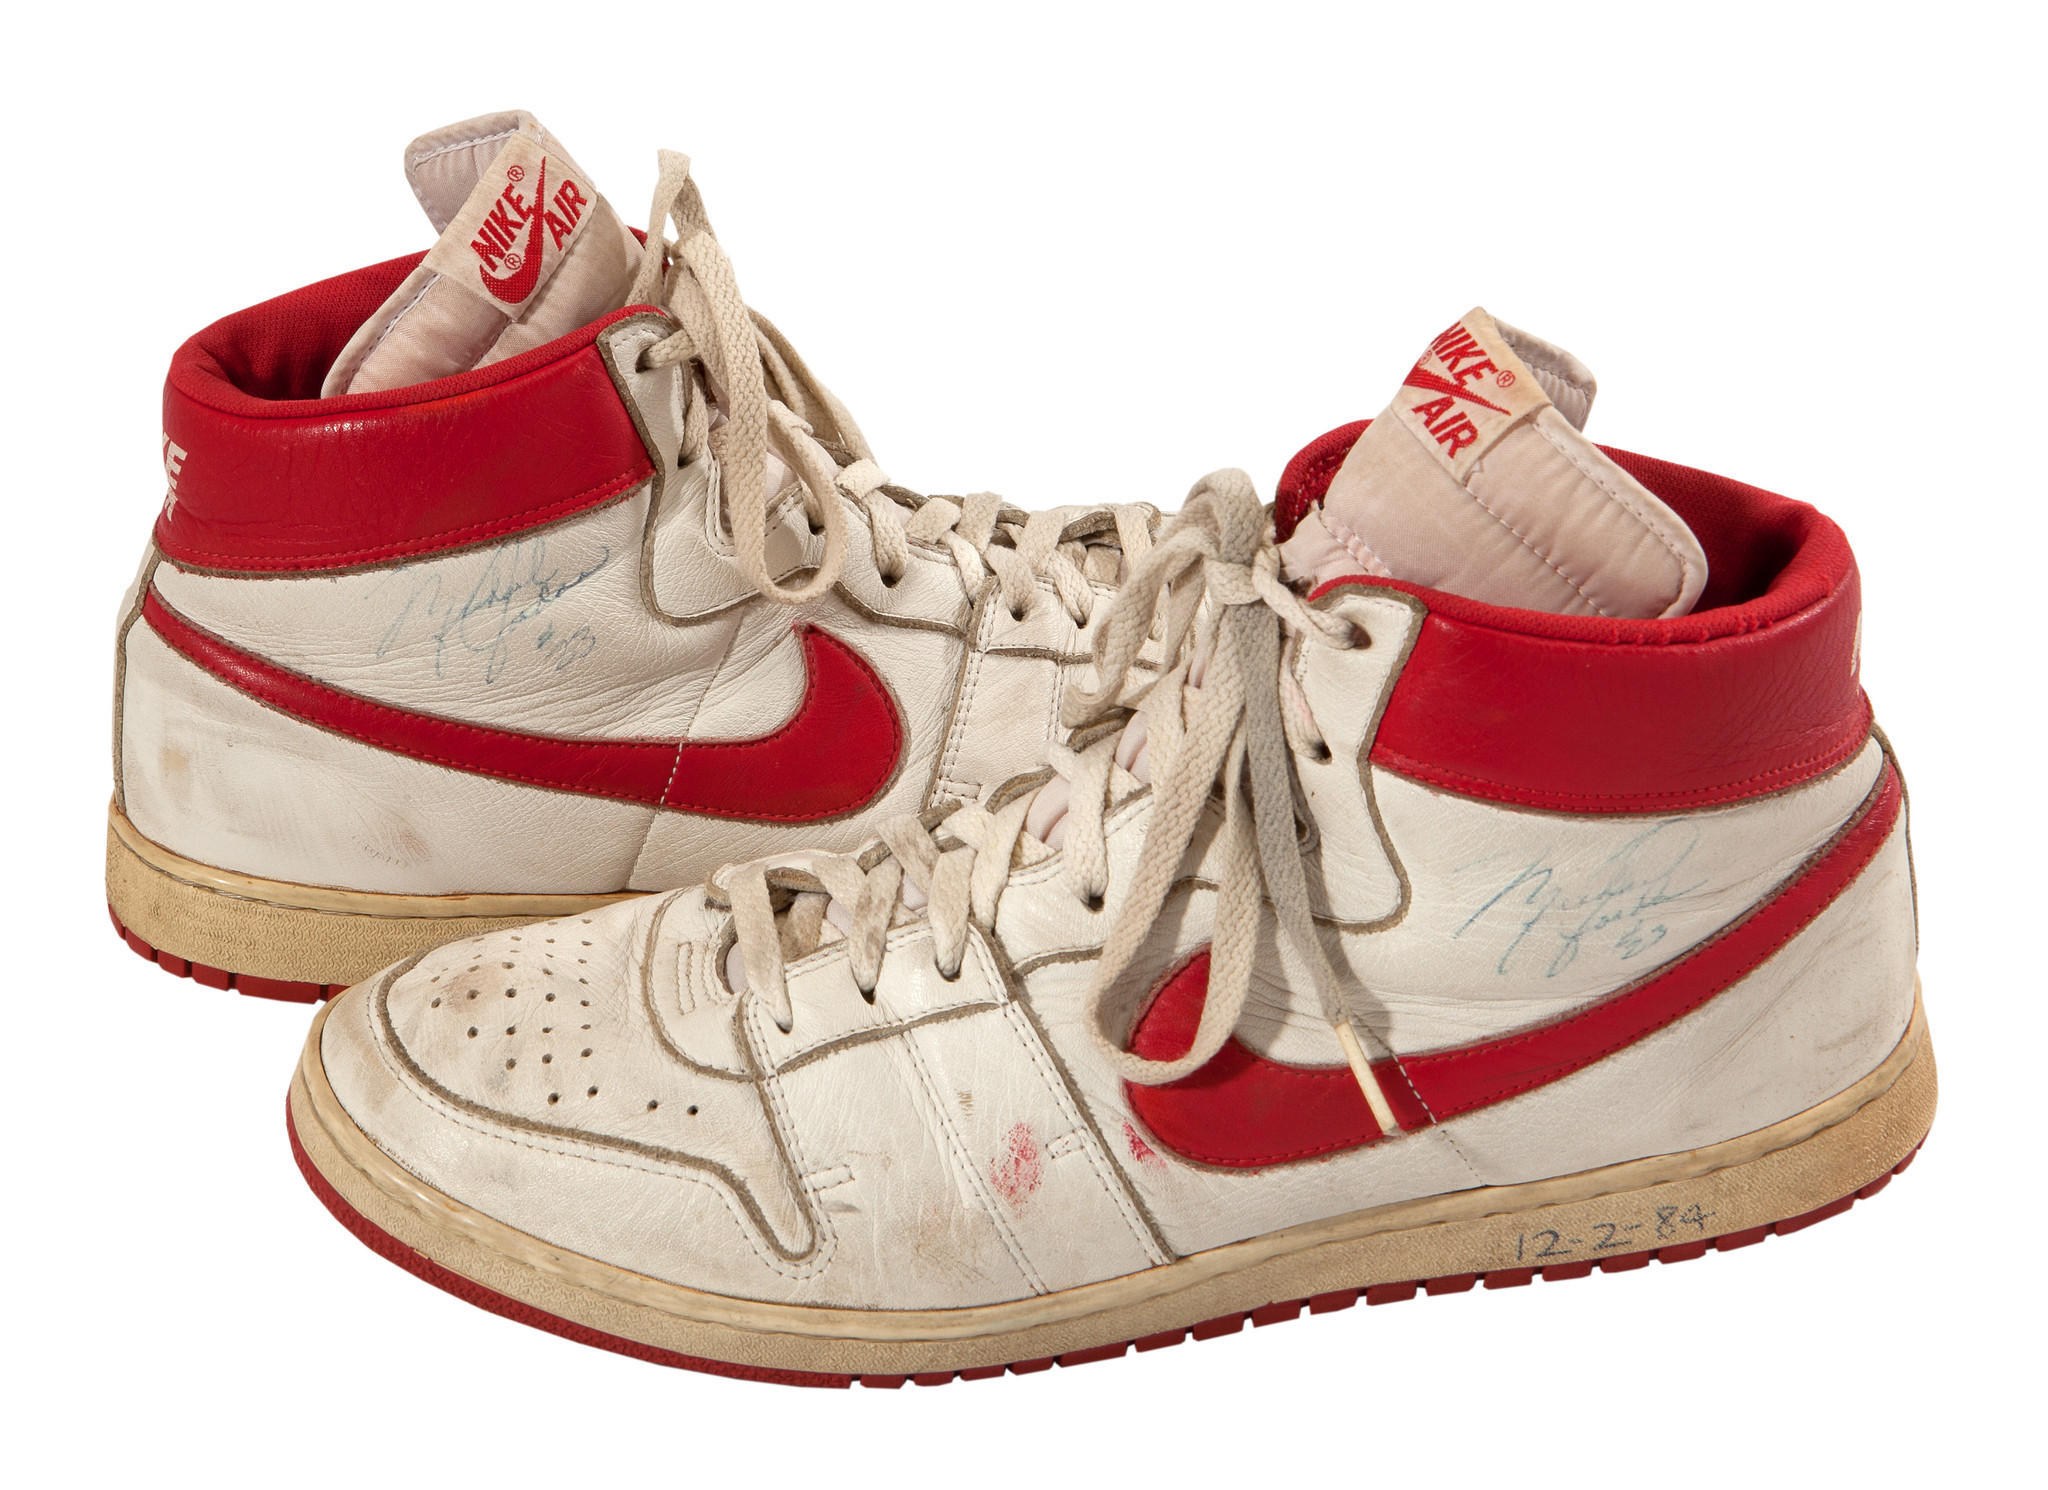 53d97e7c8415 Michael Jordan rookie shoes sell for more than  71K at auction - Chicago  Tribune